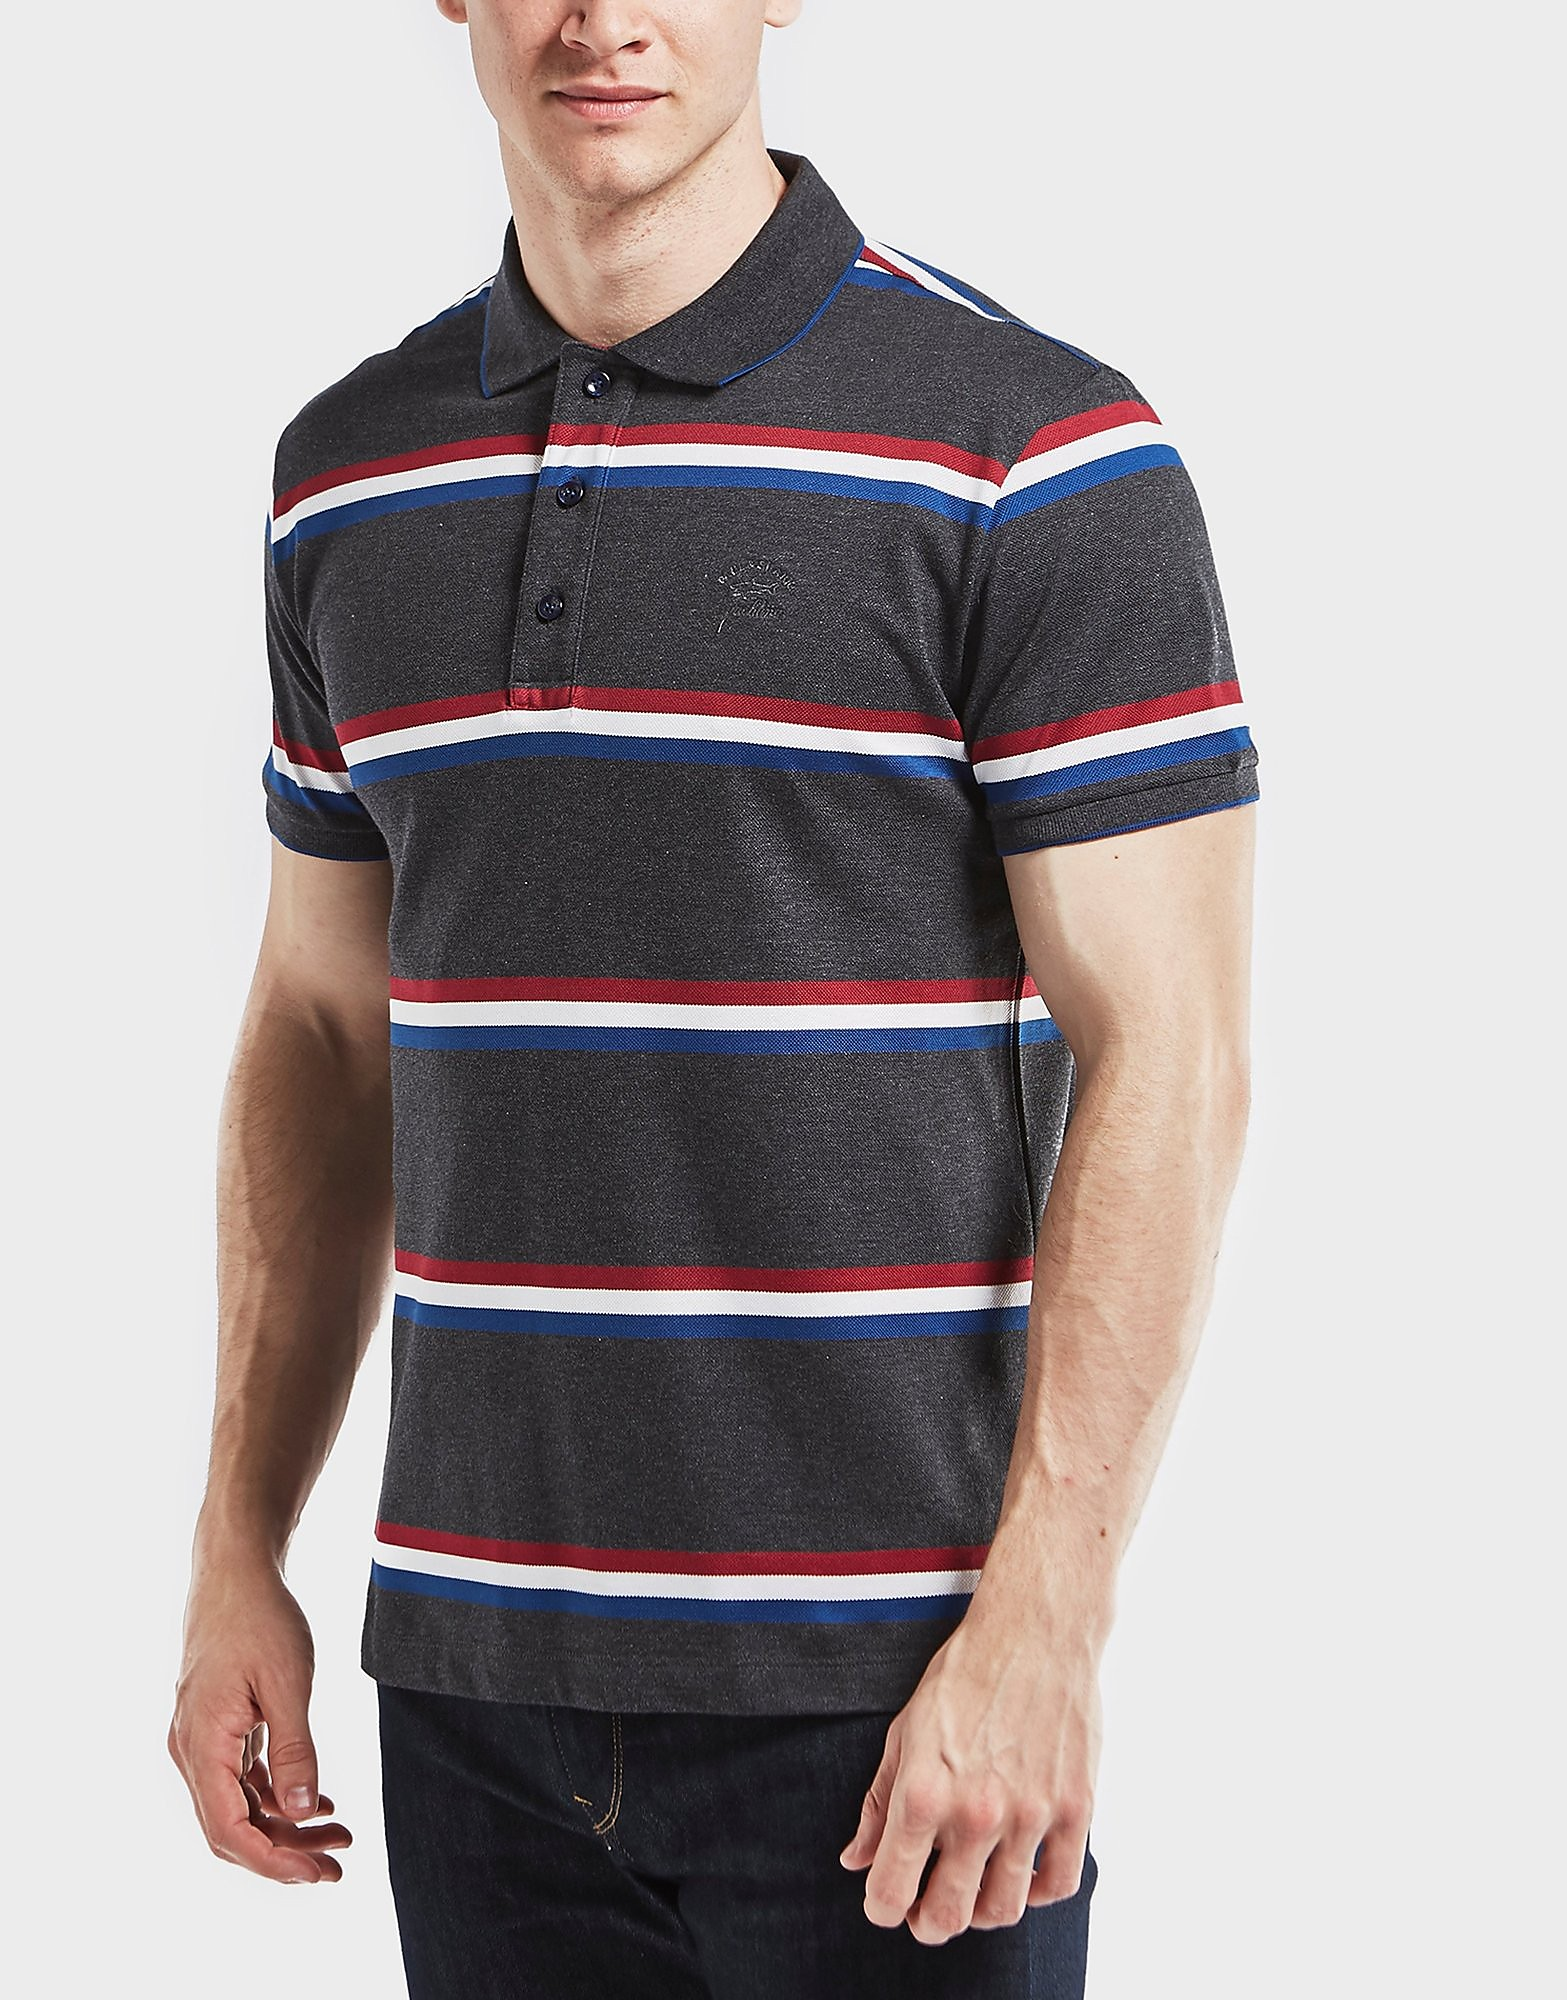 Paul and Shark Striped Short Sleeve Polo Shirt